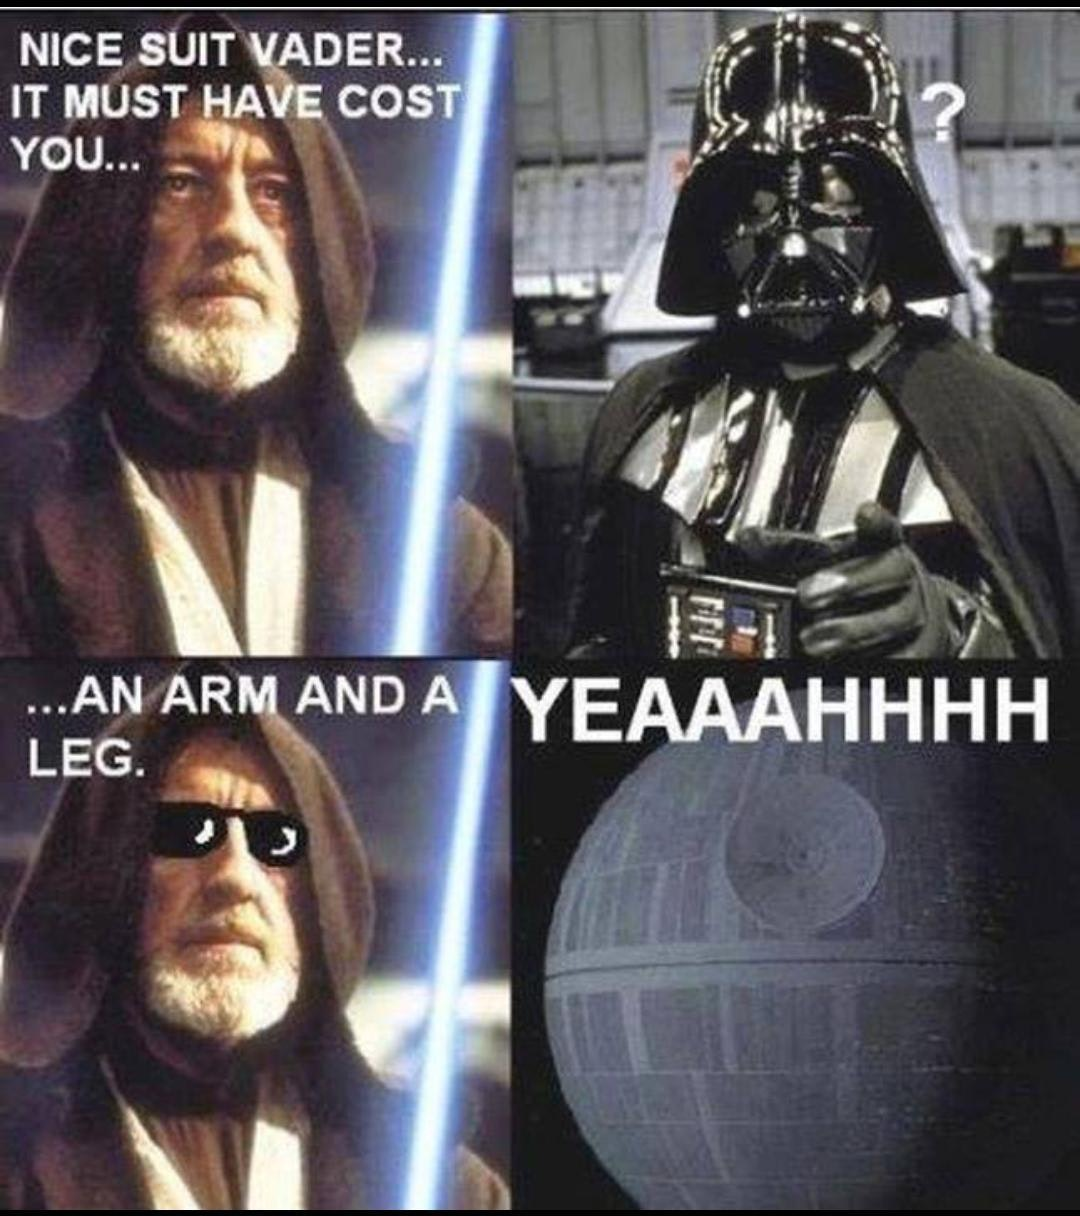 84334894jpg?rect=0%2C557%2C1080%2C541&auto=format%2Ccompress&w=650 here are some of the best 'star wars' memes inverse